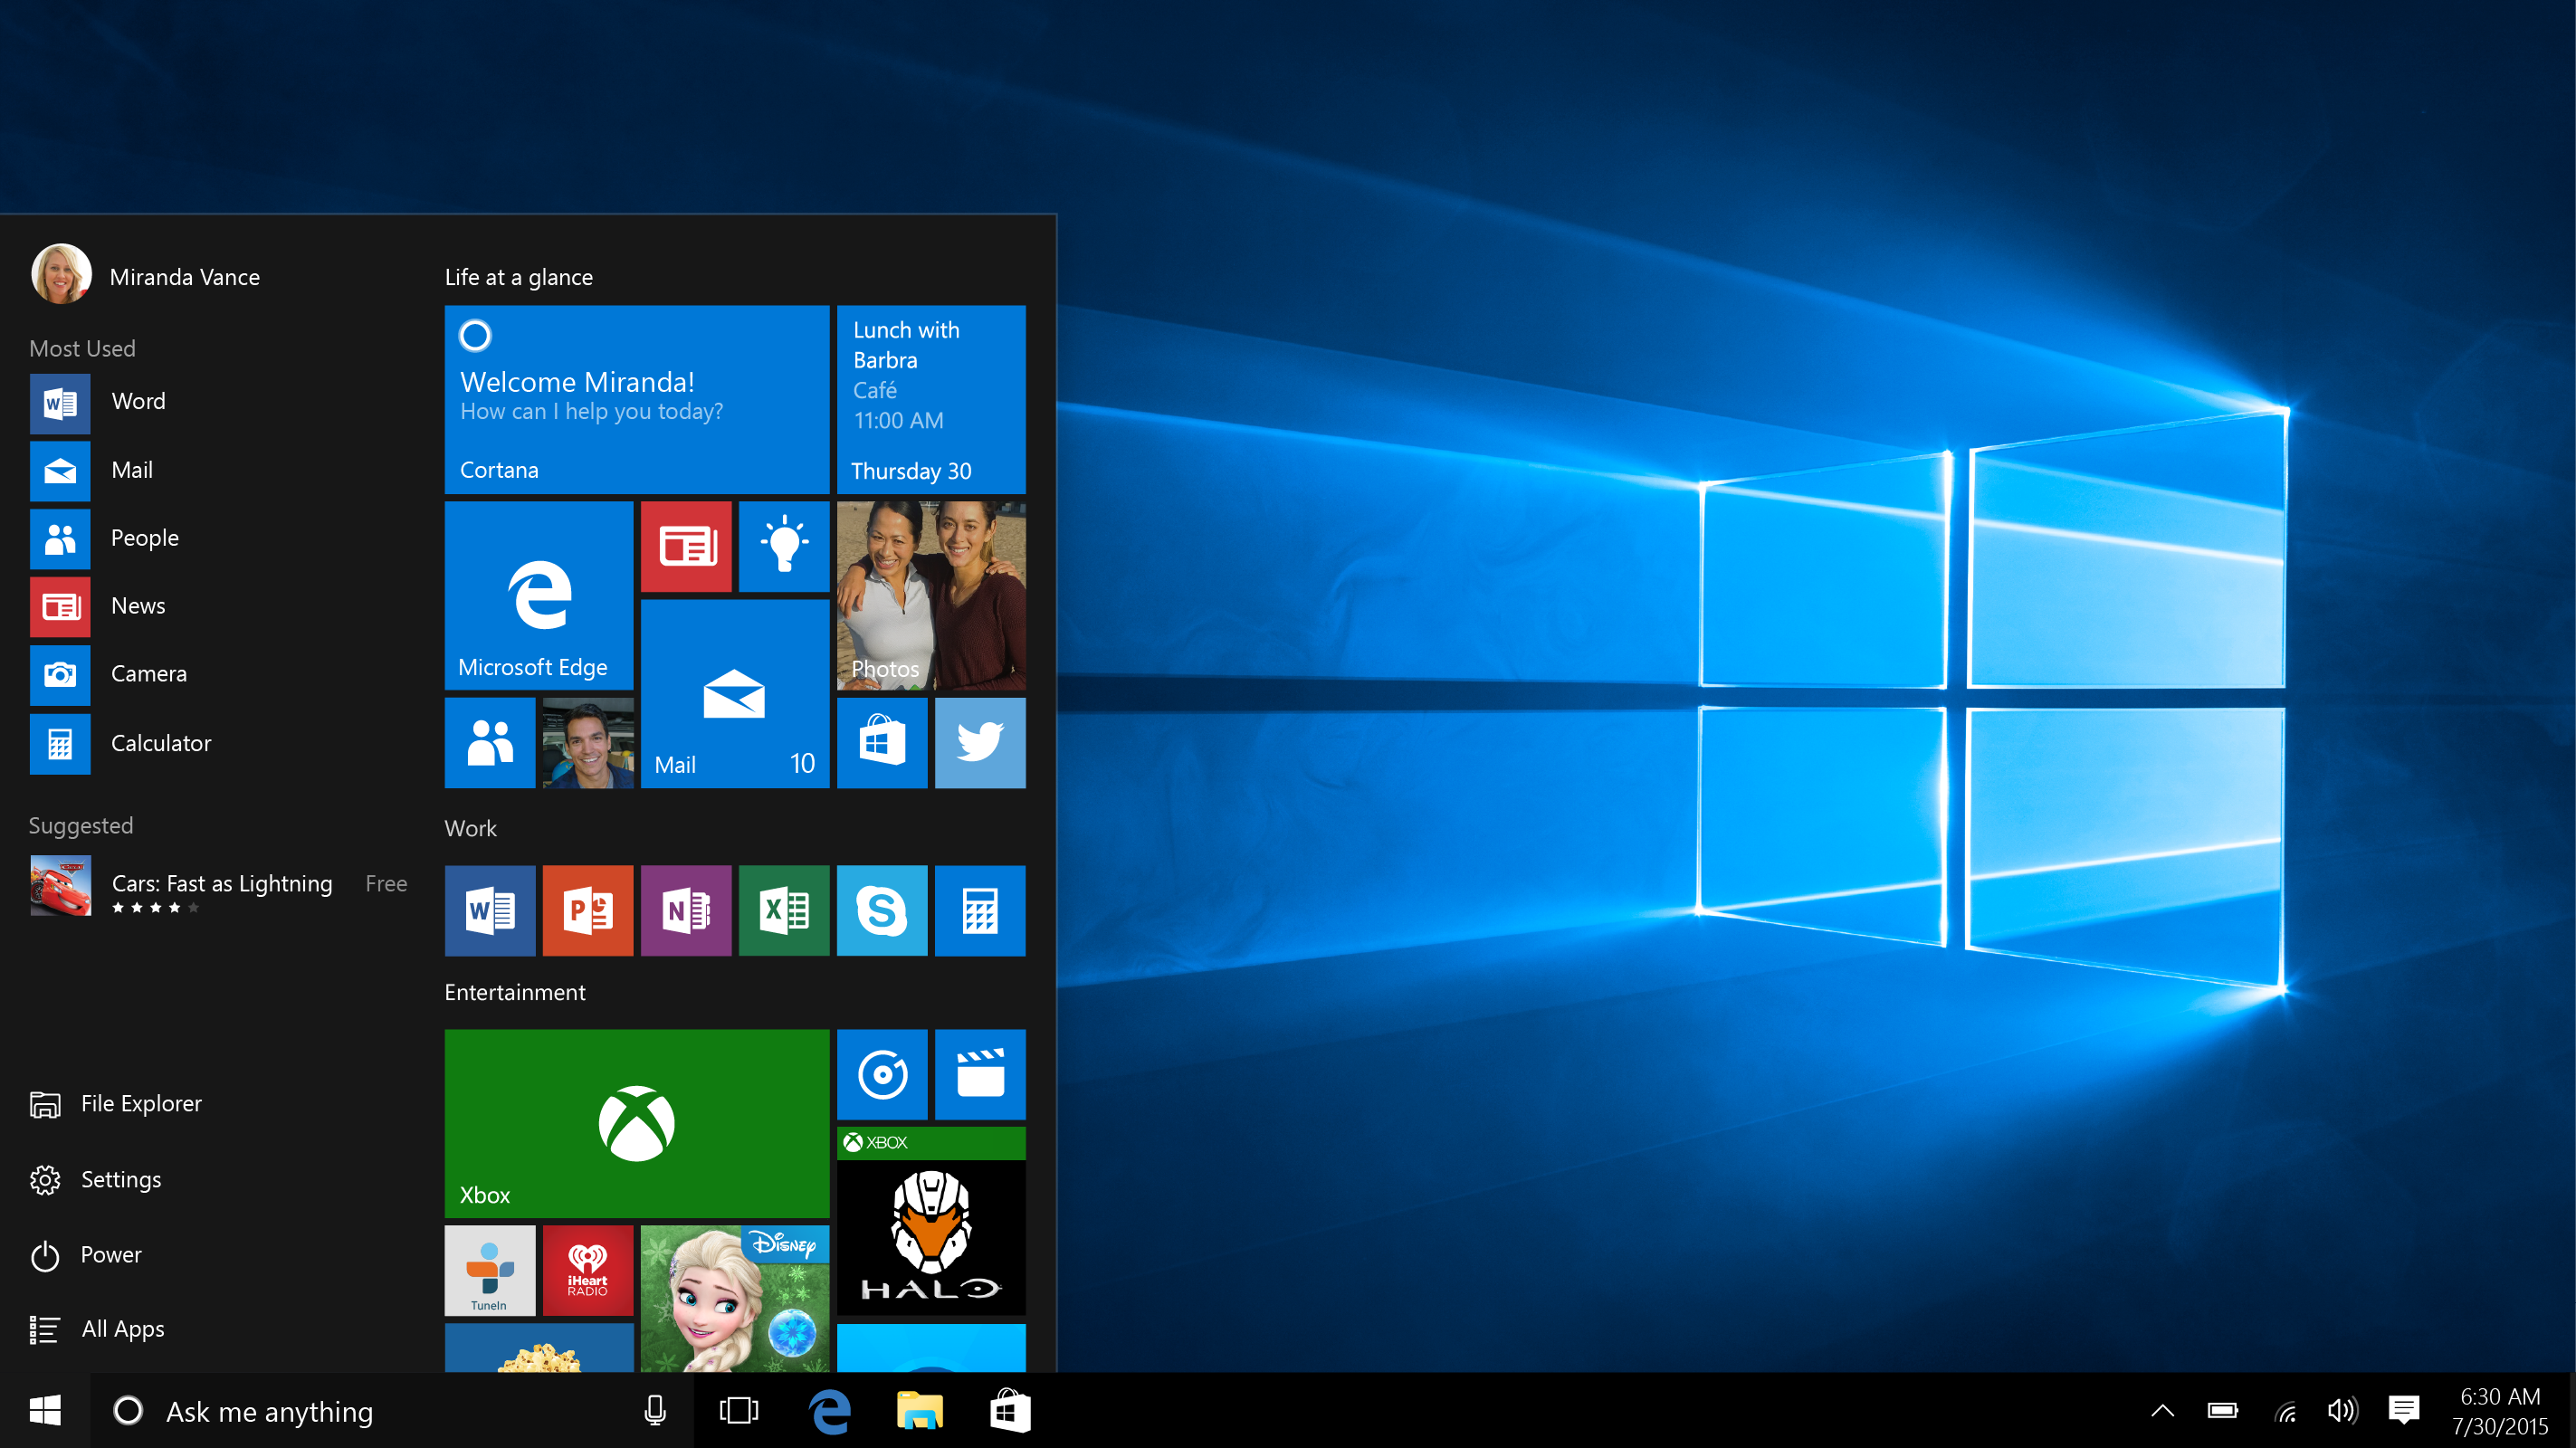 Expect two big updates for Windows 10 in 2017